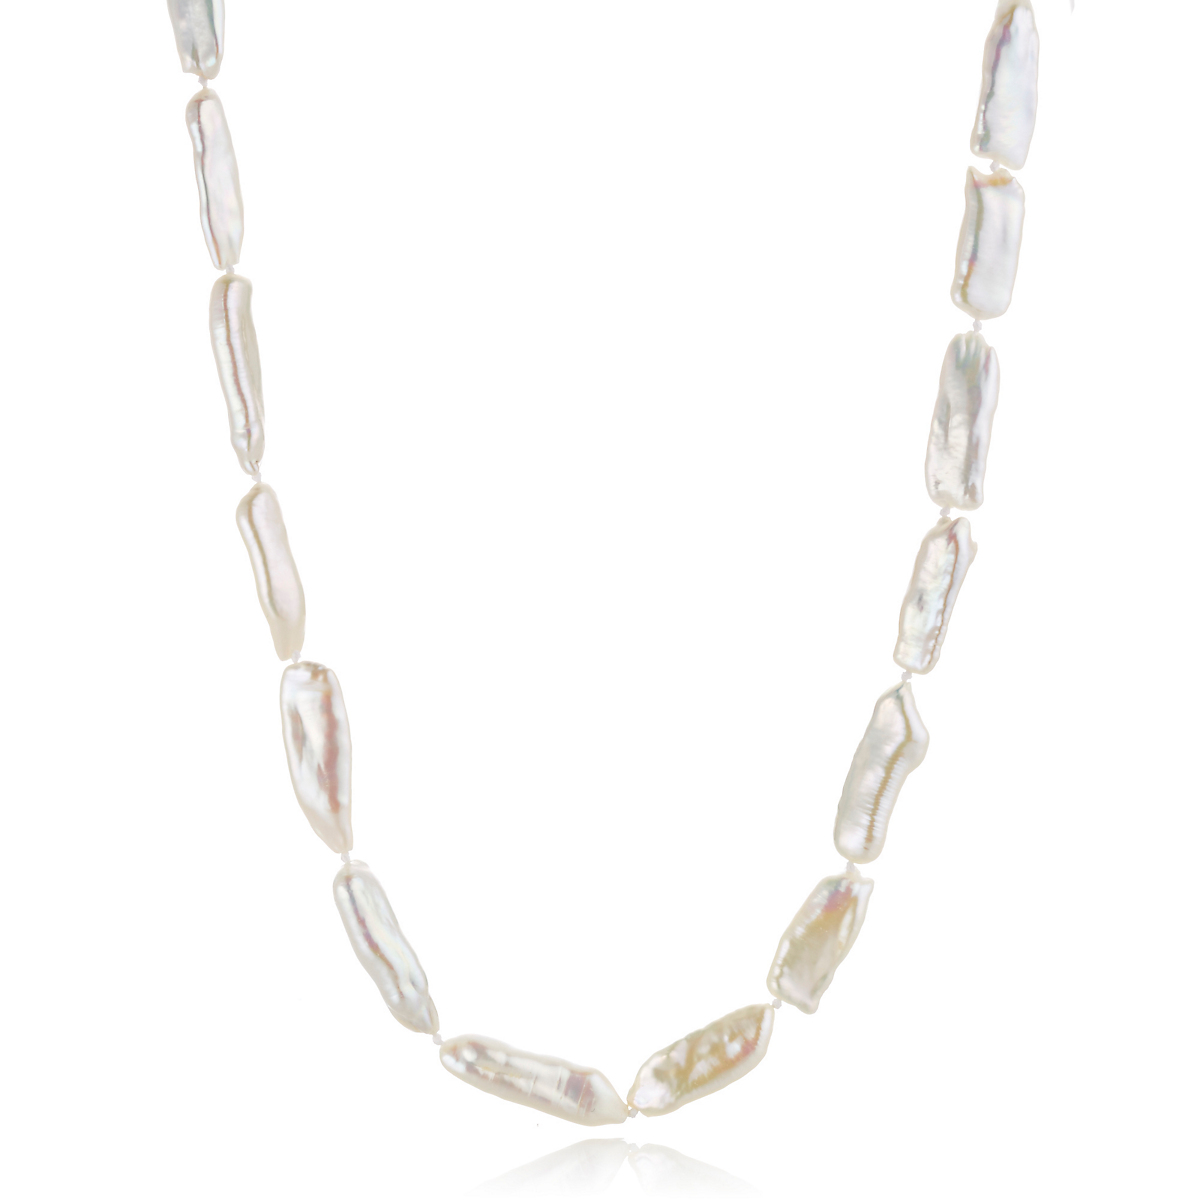 Gump's Elongated Freshwater Pearl Rope Necklace